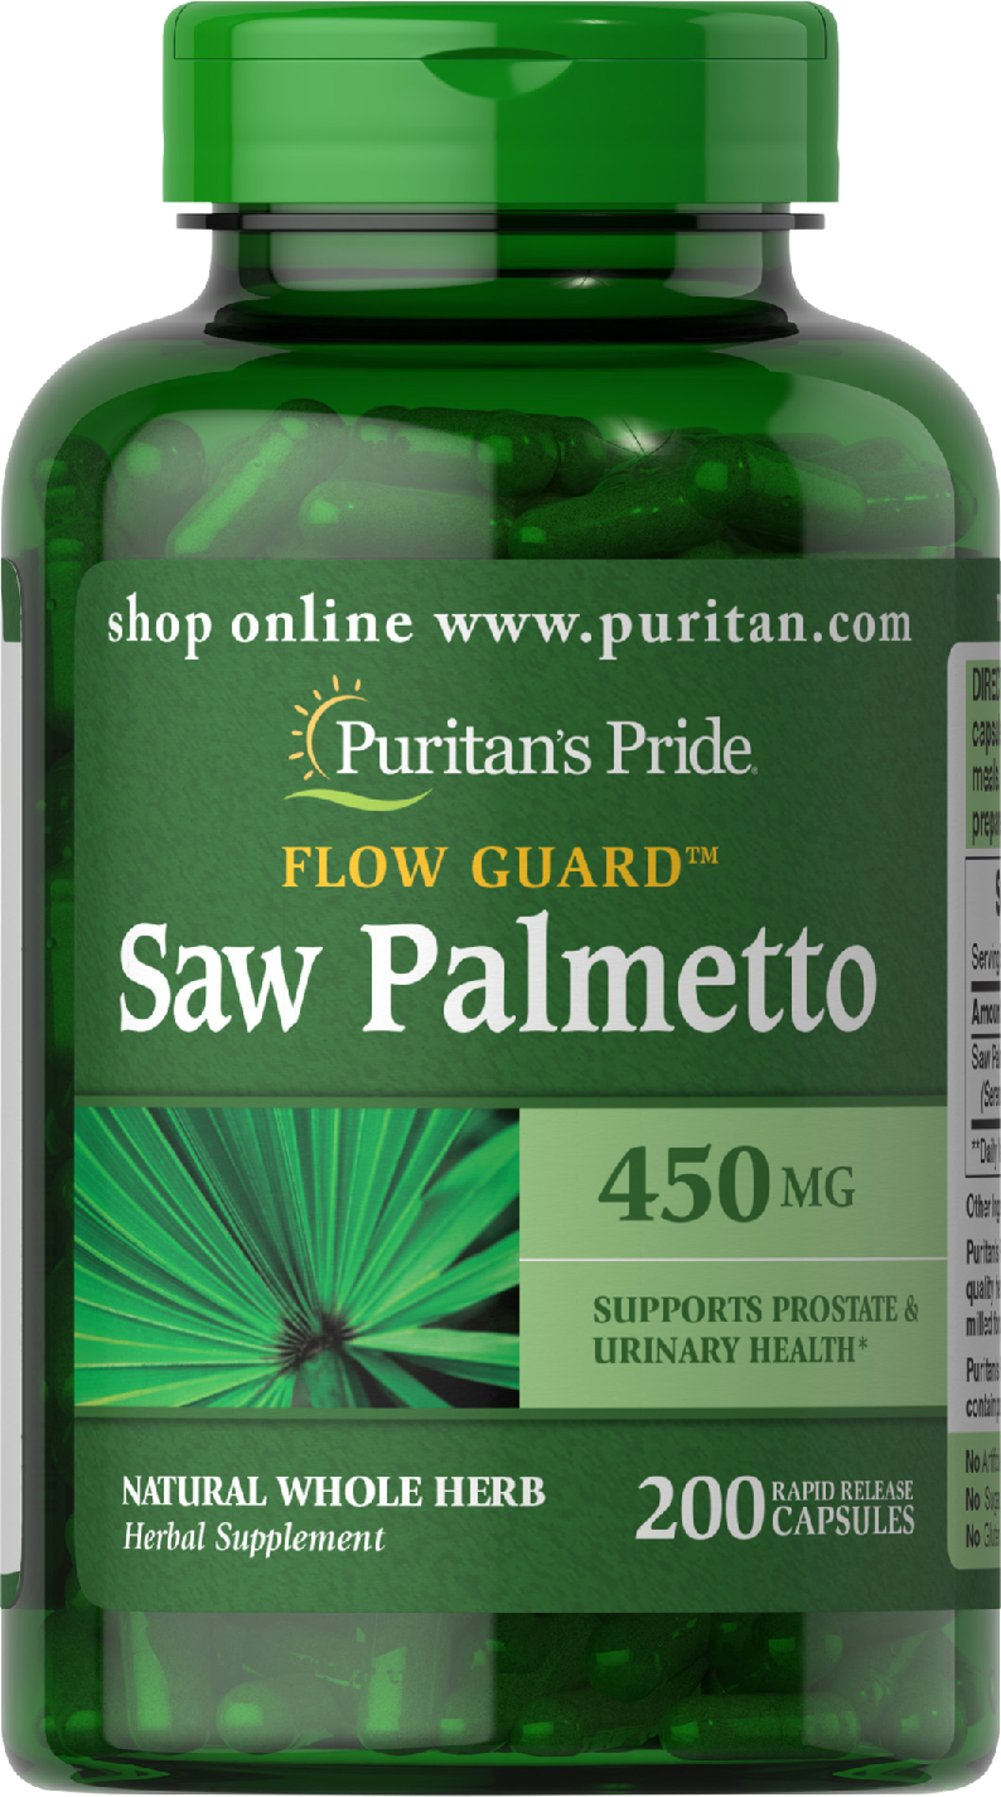 Saw Palmetto 450 mg  200 Capsules 450 mg $16.99